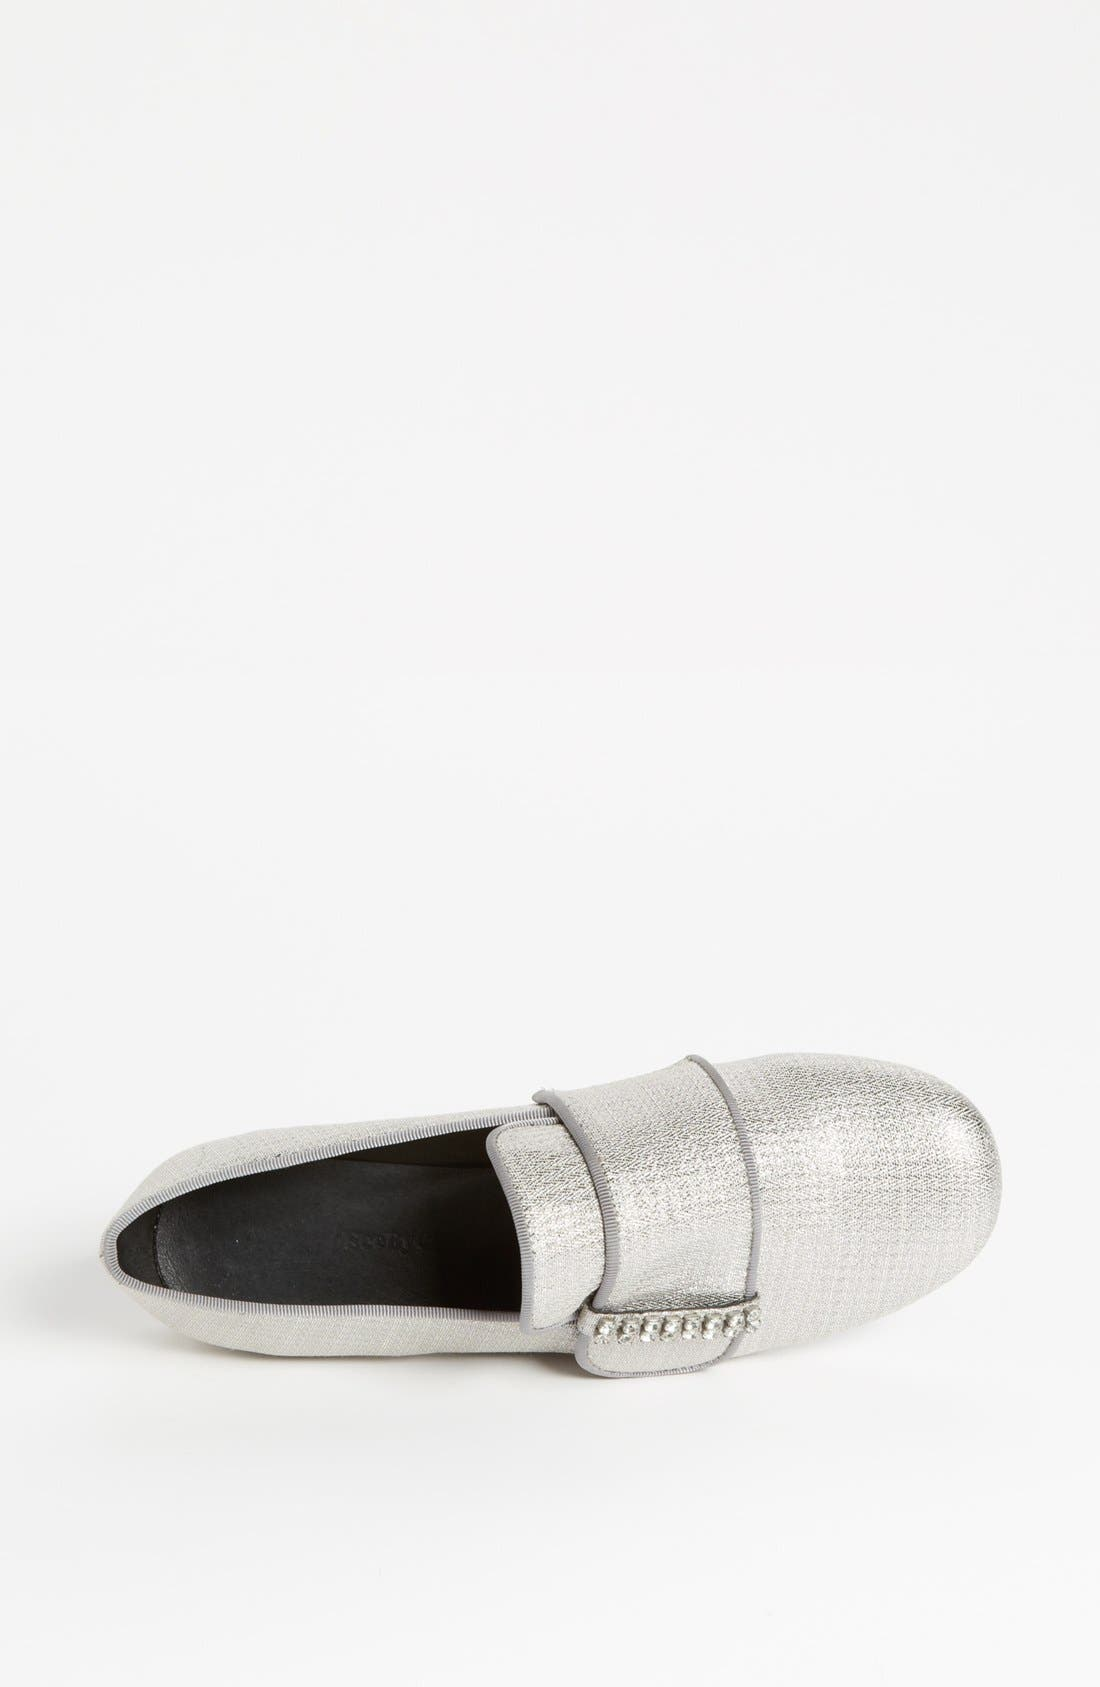 Alternate Image 3  - See by Chloé 'Ziggy' Loafer Flat